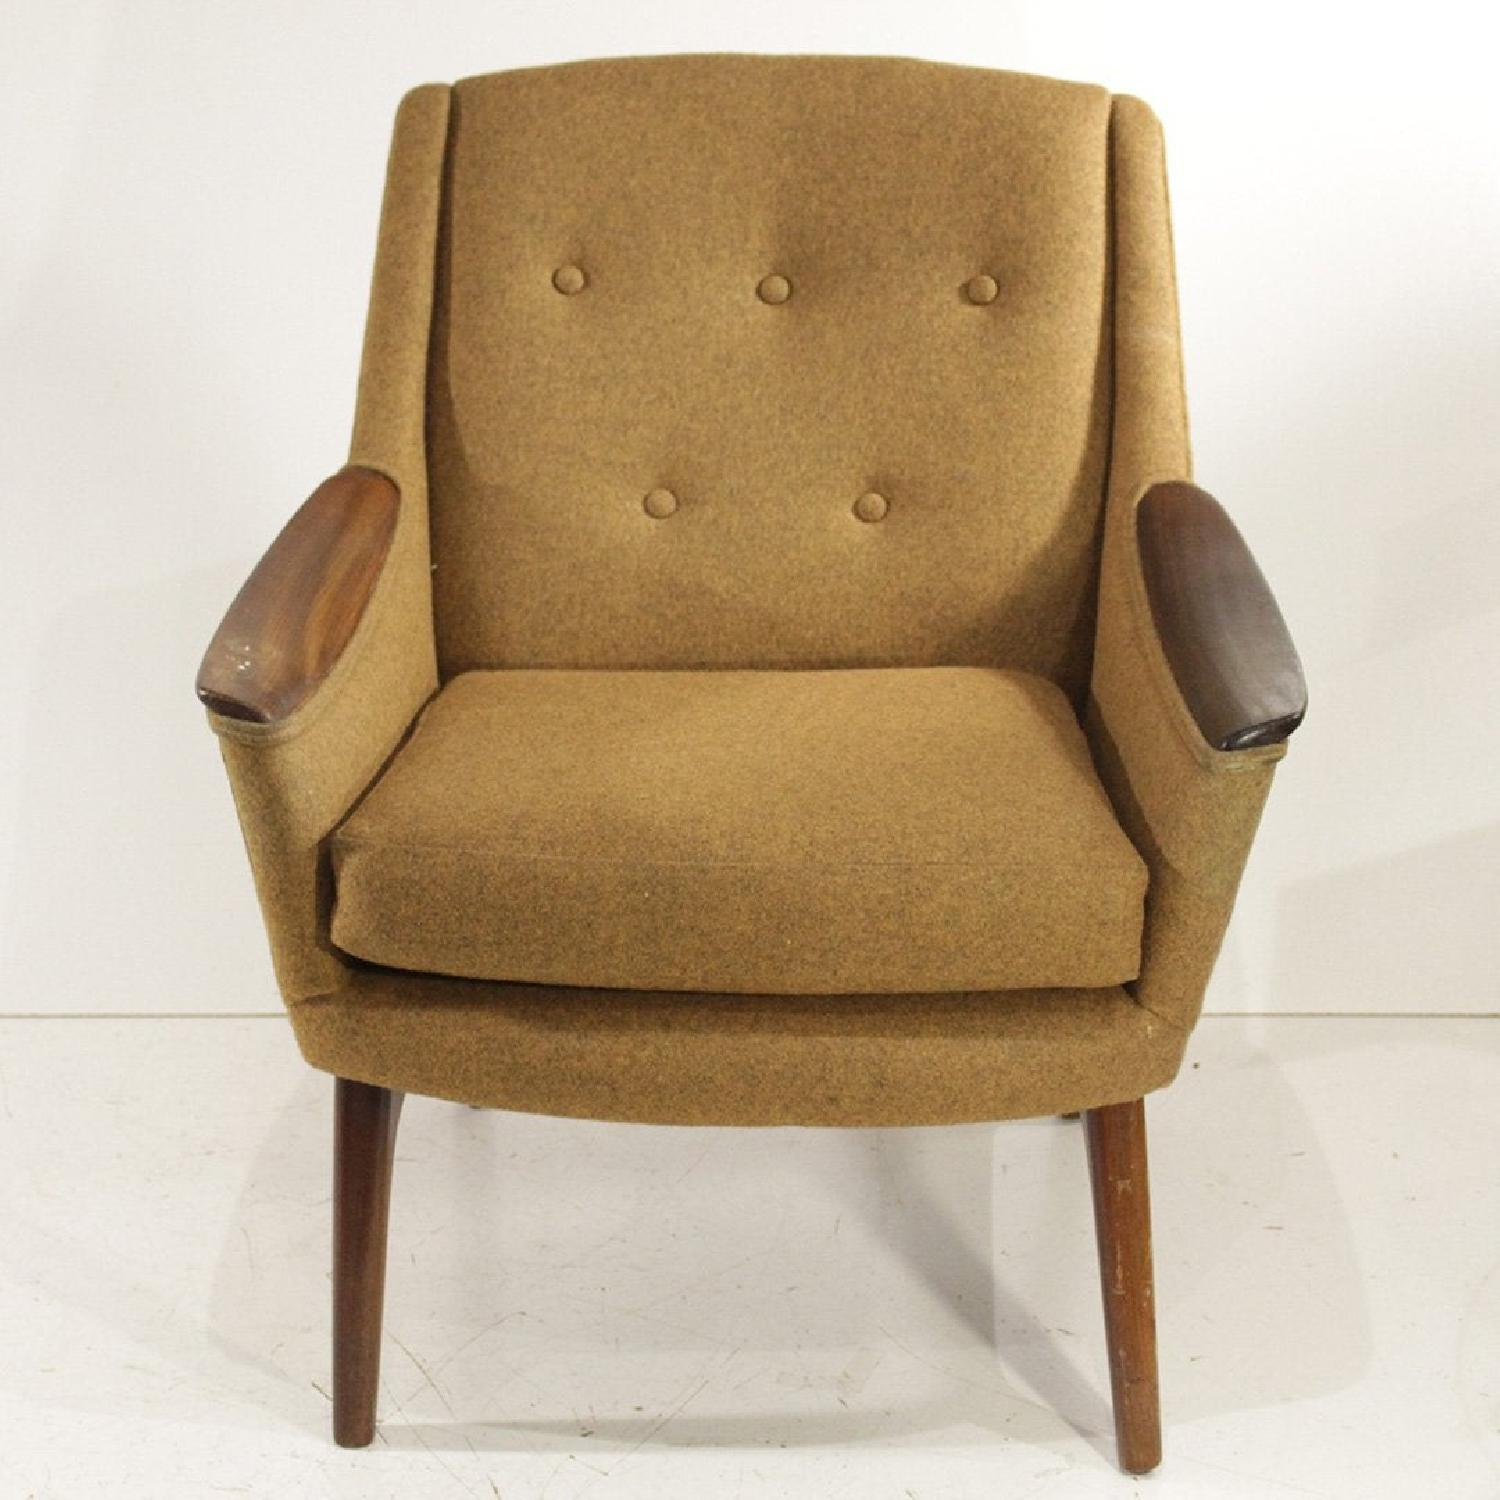 1960s Adrian Pearsall Walnut & Tweed Lounge Chair - image-4